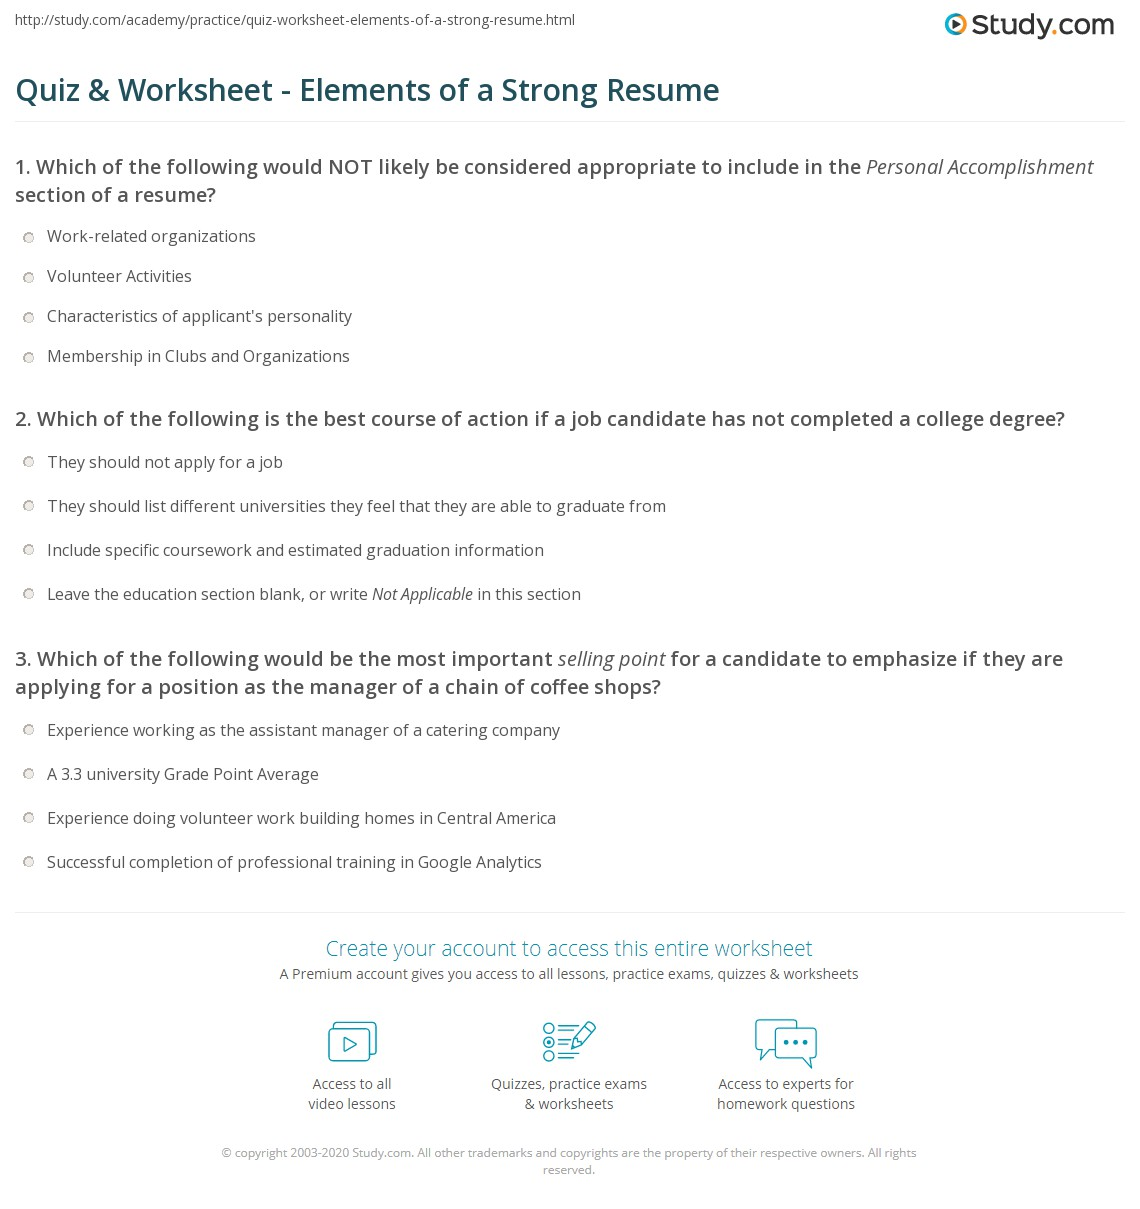 quiz worksheet elements of a strong resume com print parts of your resume sections relevant information worksheet